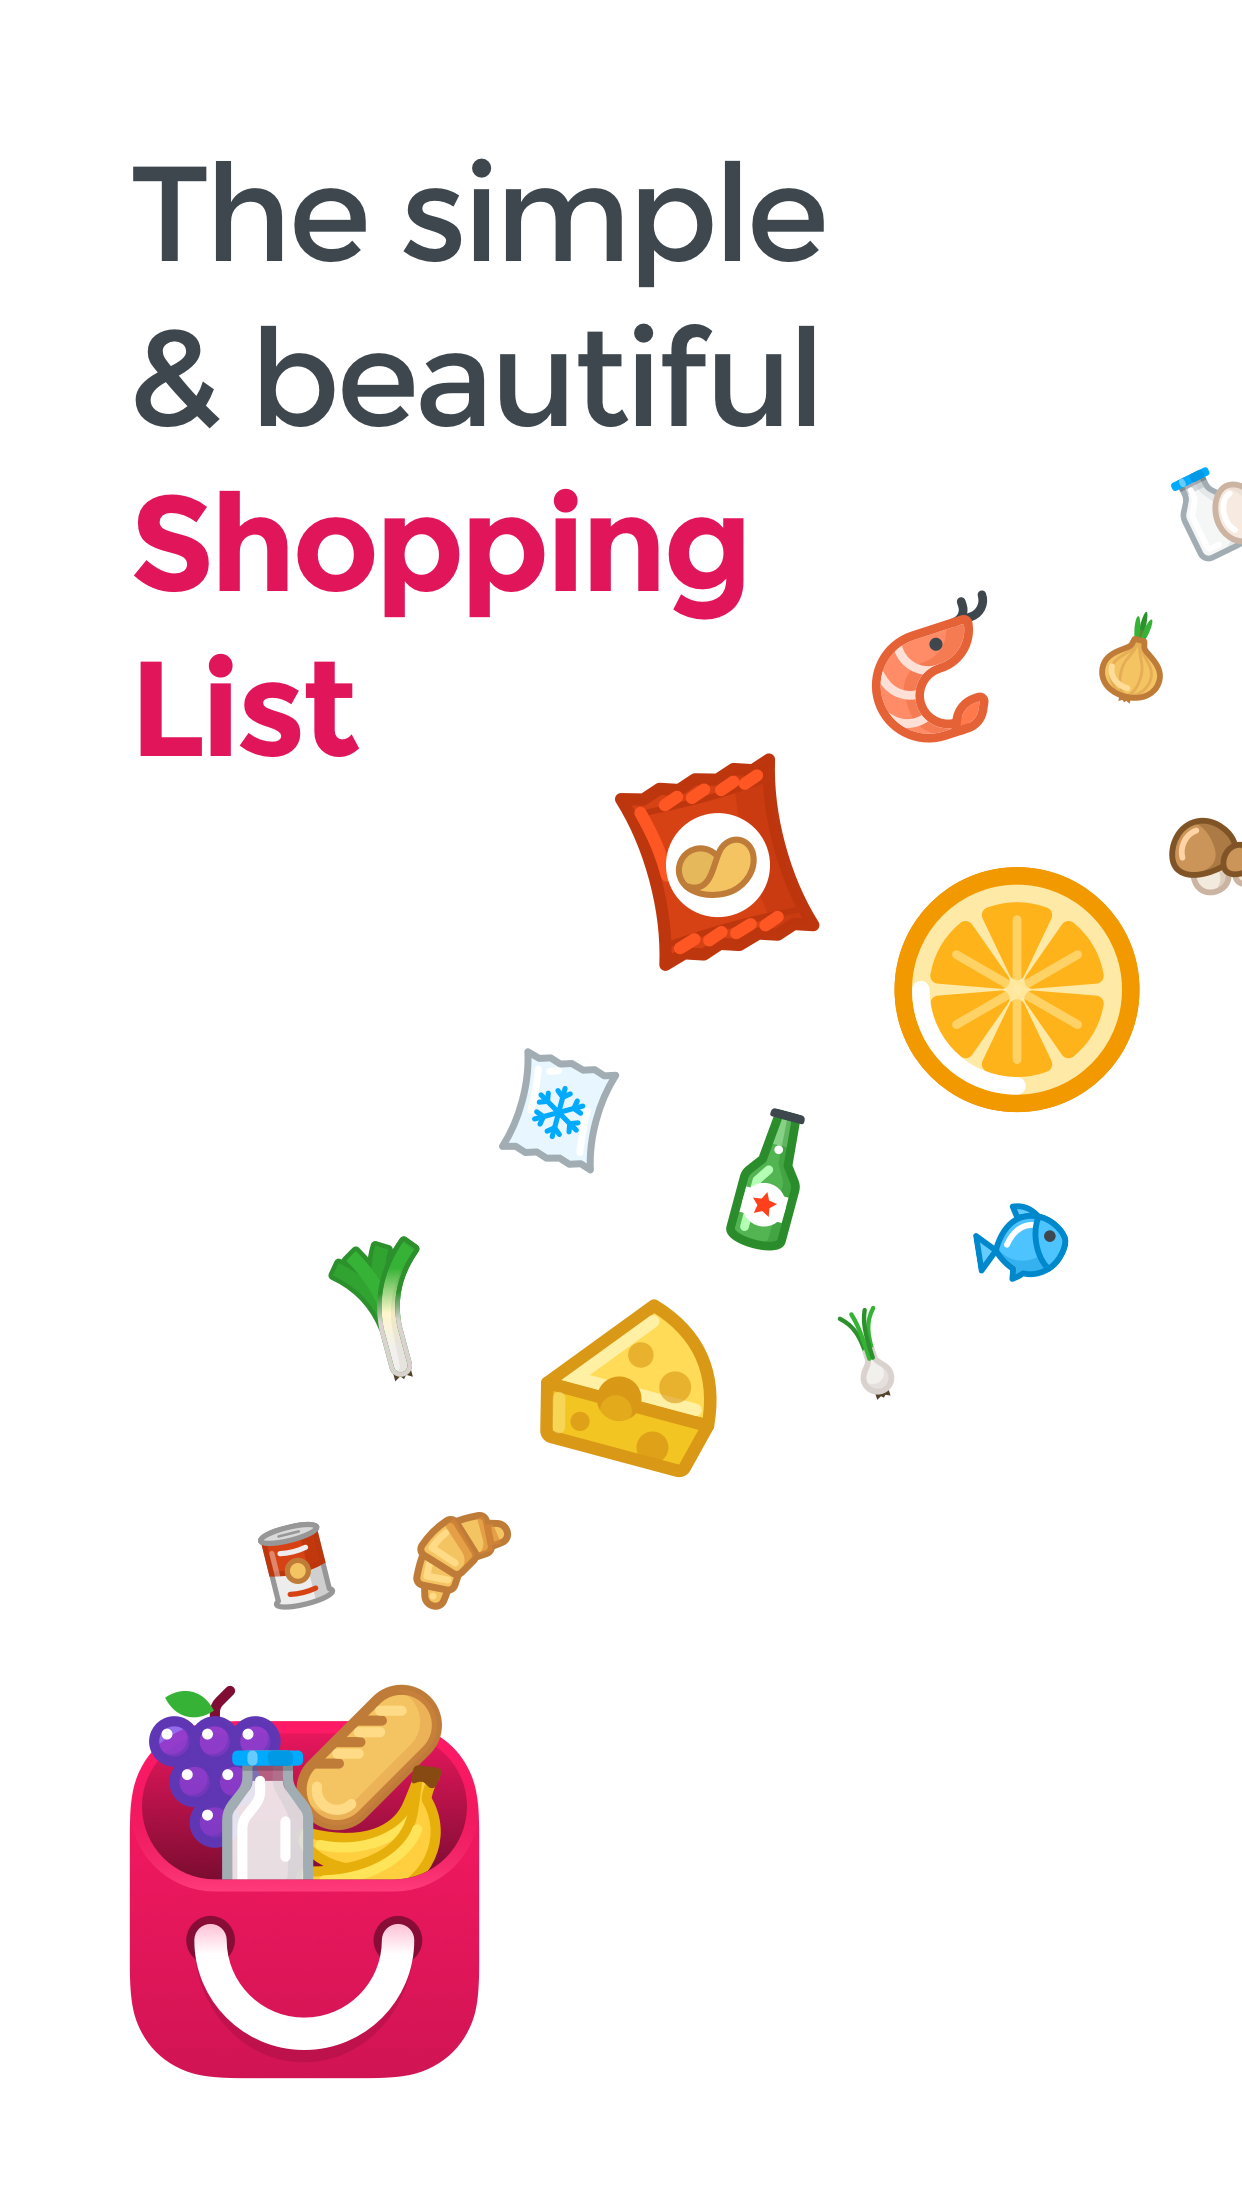 Airrends - Simple and beautiful shopping list app for iOS